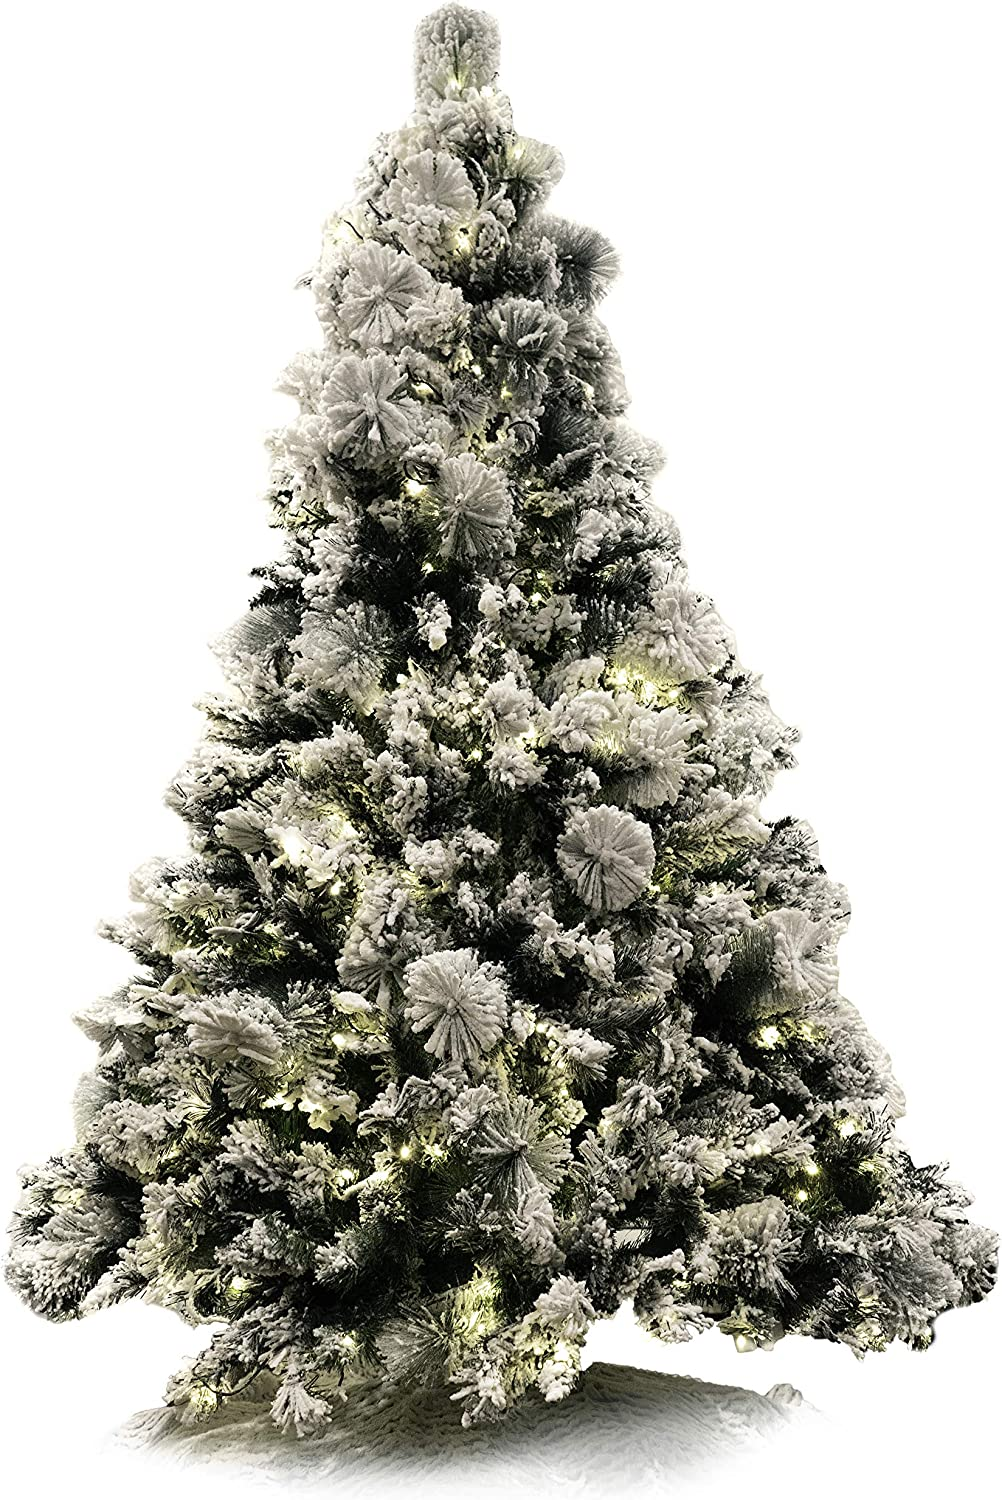 Red Co. 6 Foot Premium - Flocked Snowy Artificial Christmas Tree - 500 UL Warm White LED Lights with Metal Stand